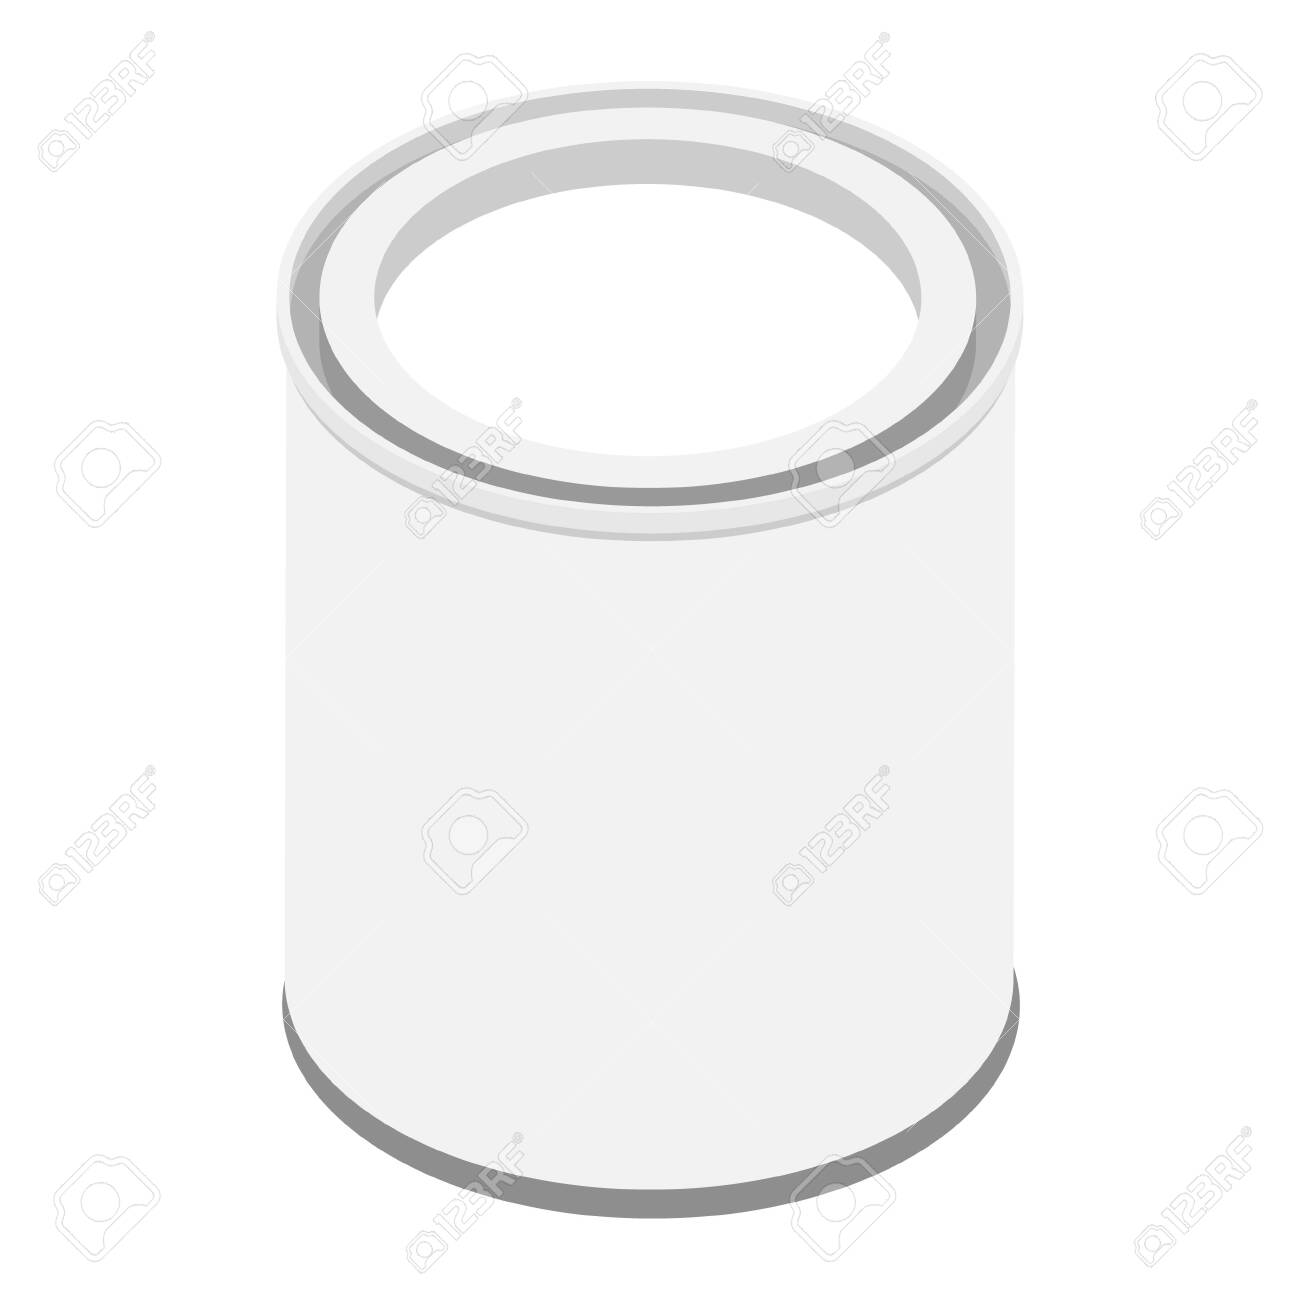 Paint can isolated on white background raster isometric view - 152791861